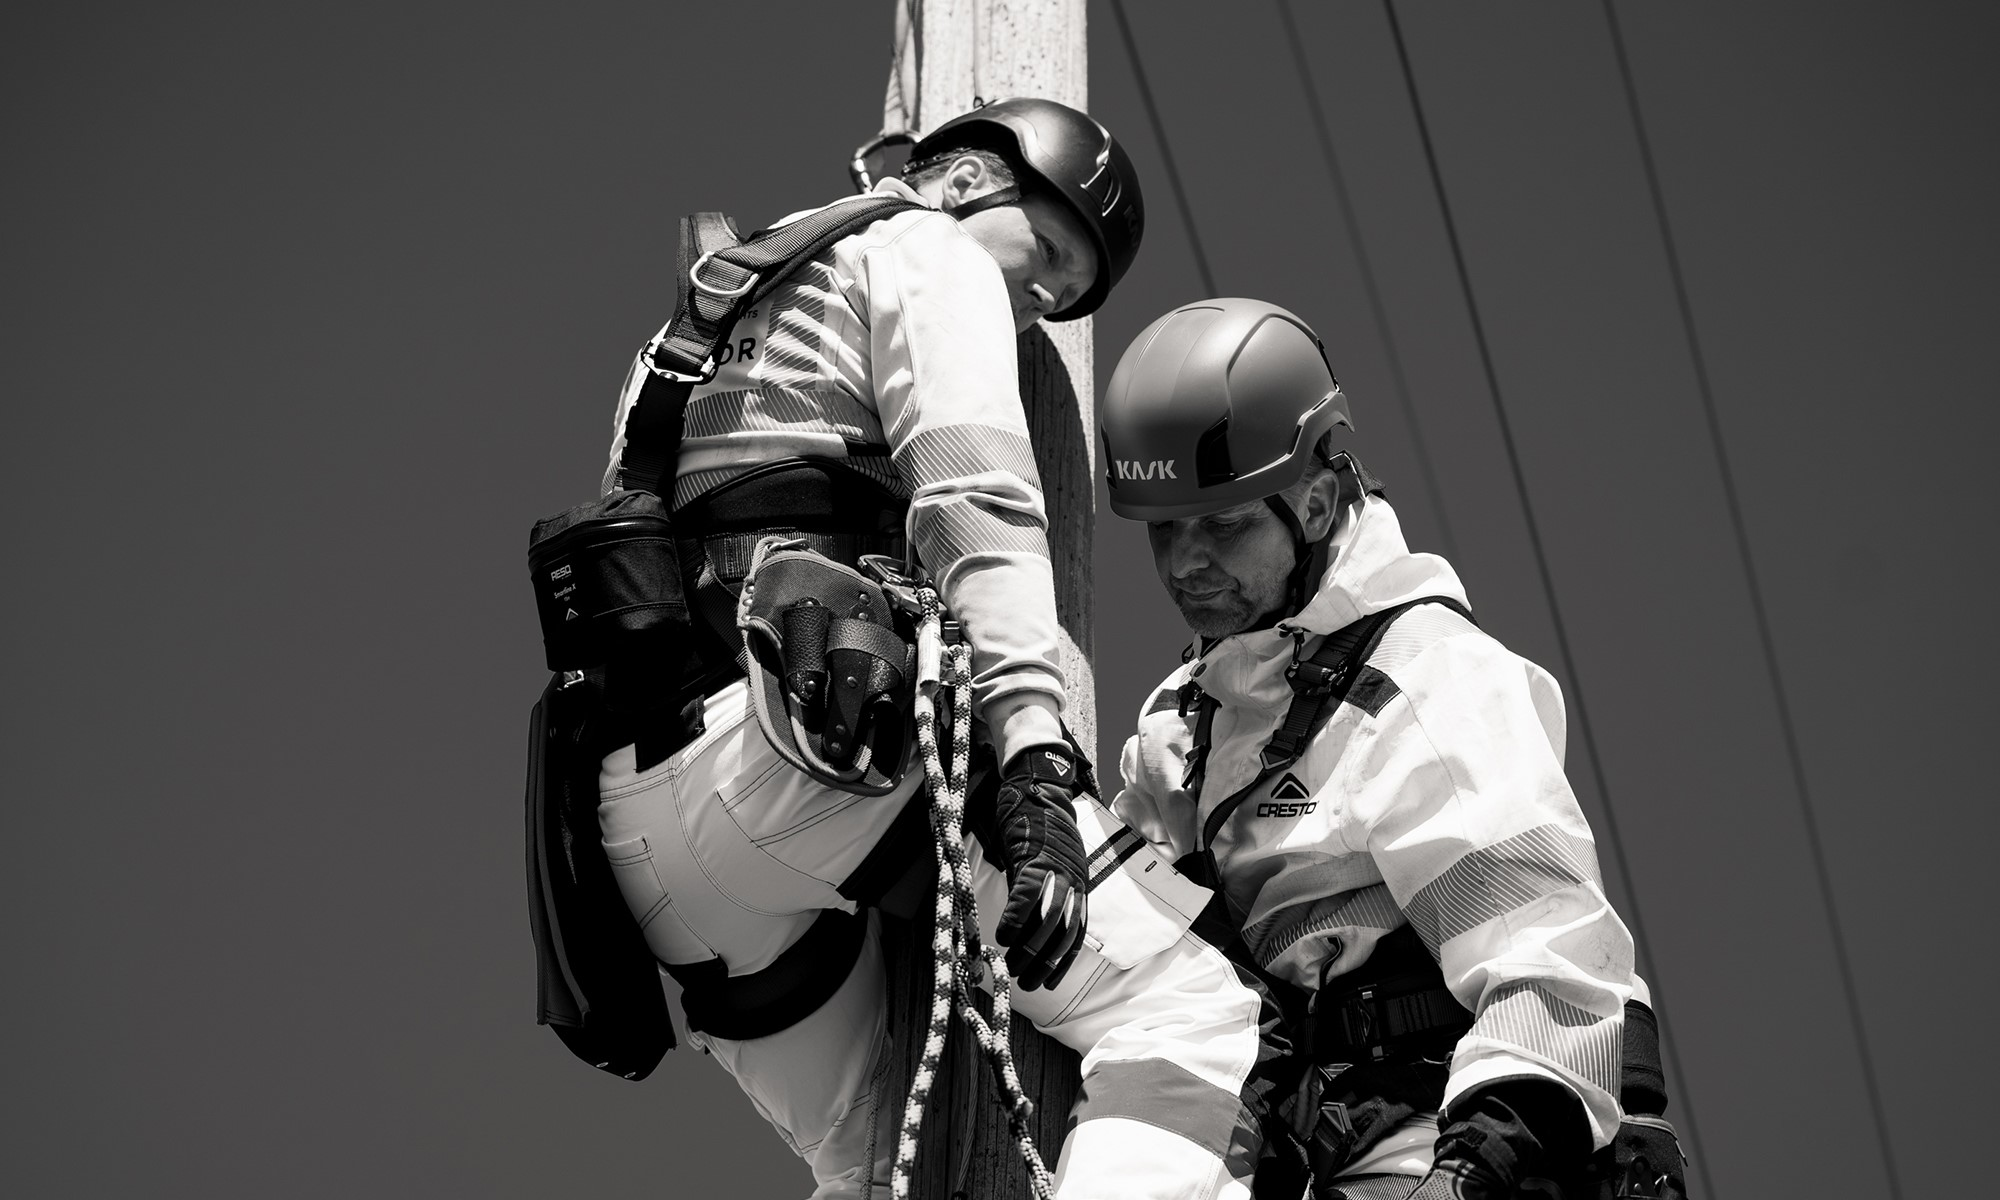 A height worker evacuating his injured friend from a pole